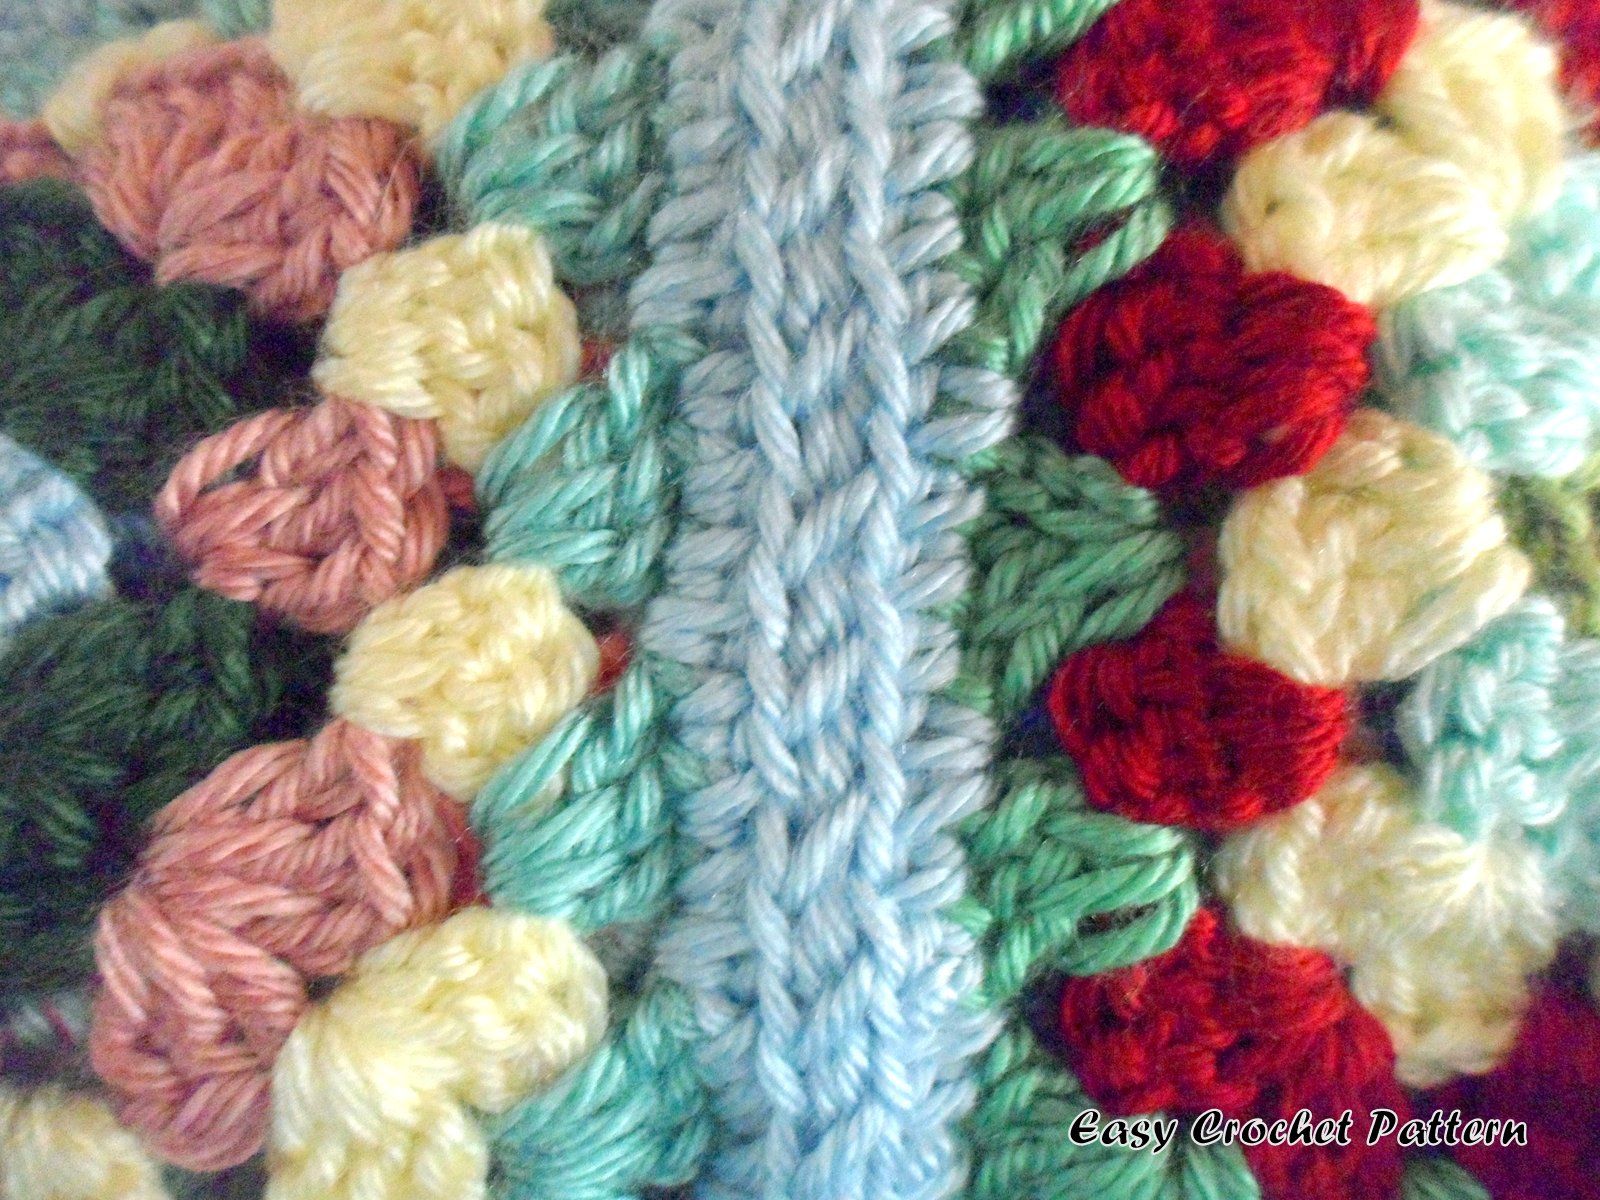 Crocheting Granny Squares Together Video : together. You will be able to tell the right side of the granny square ...